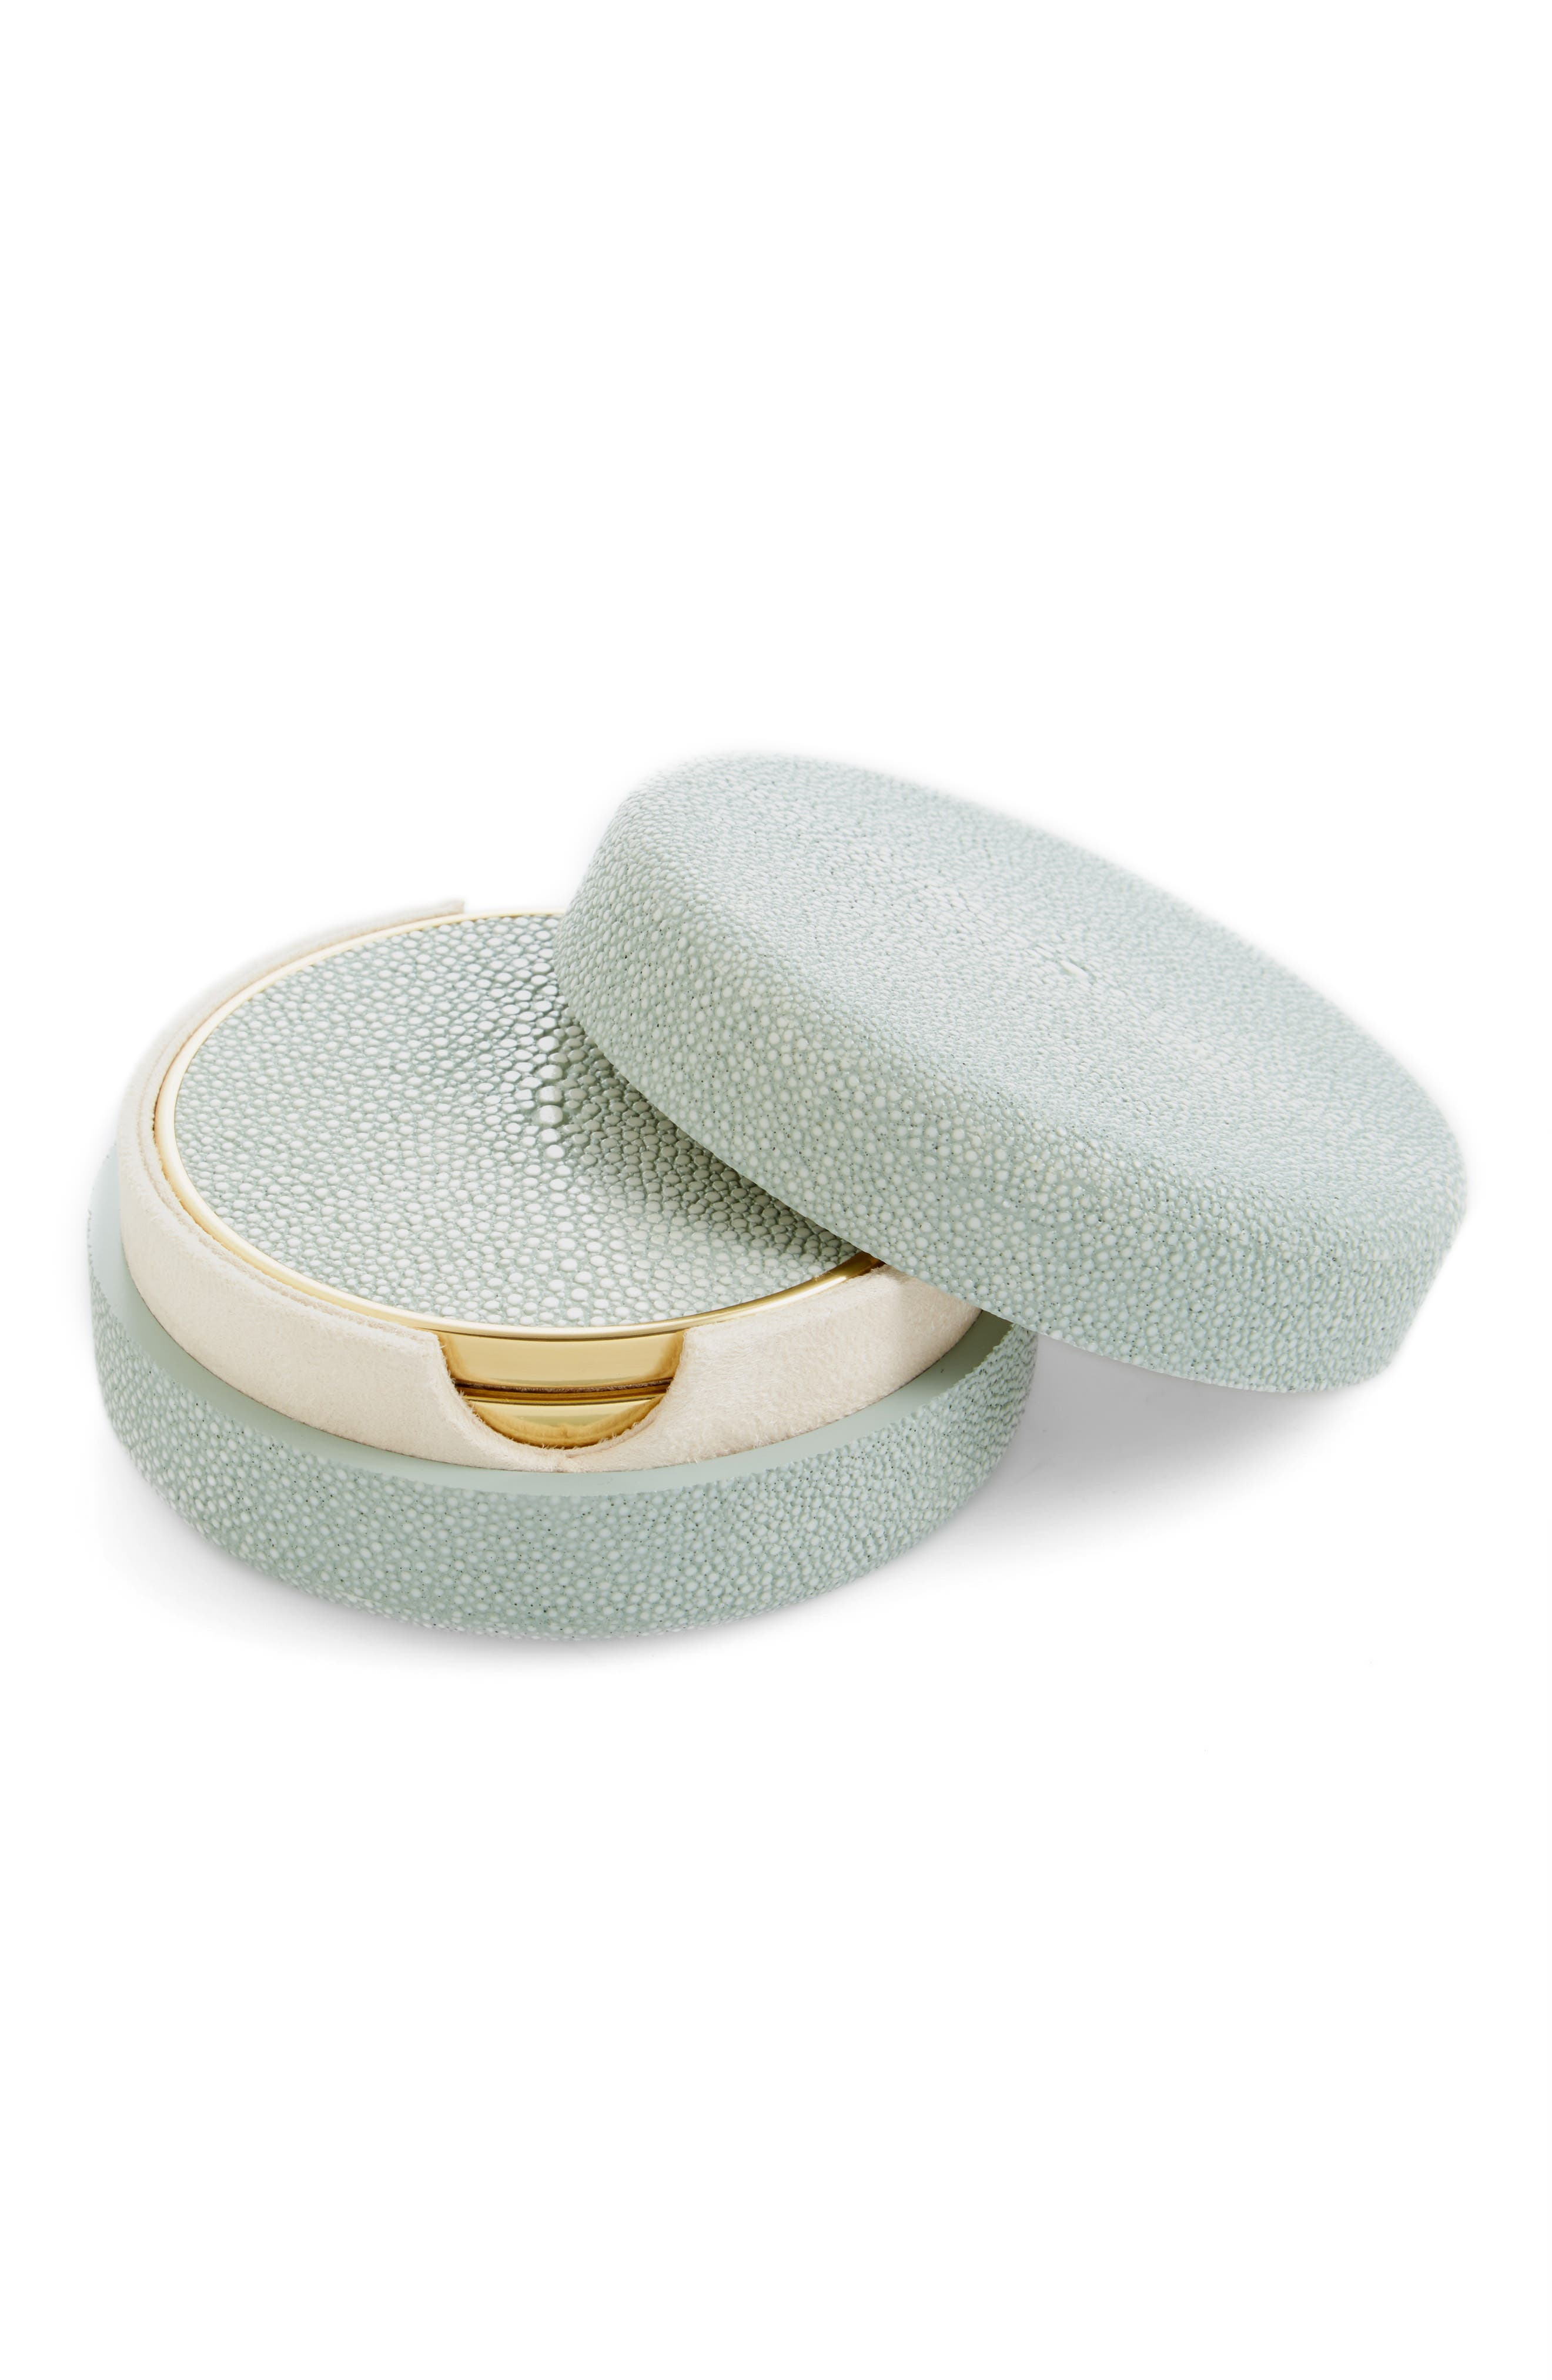 Shagreen Set of 4 Coasters with Lidded Holder,                         Main,                         color, MIST